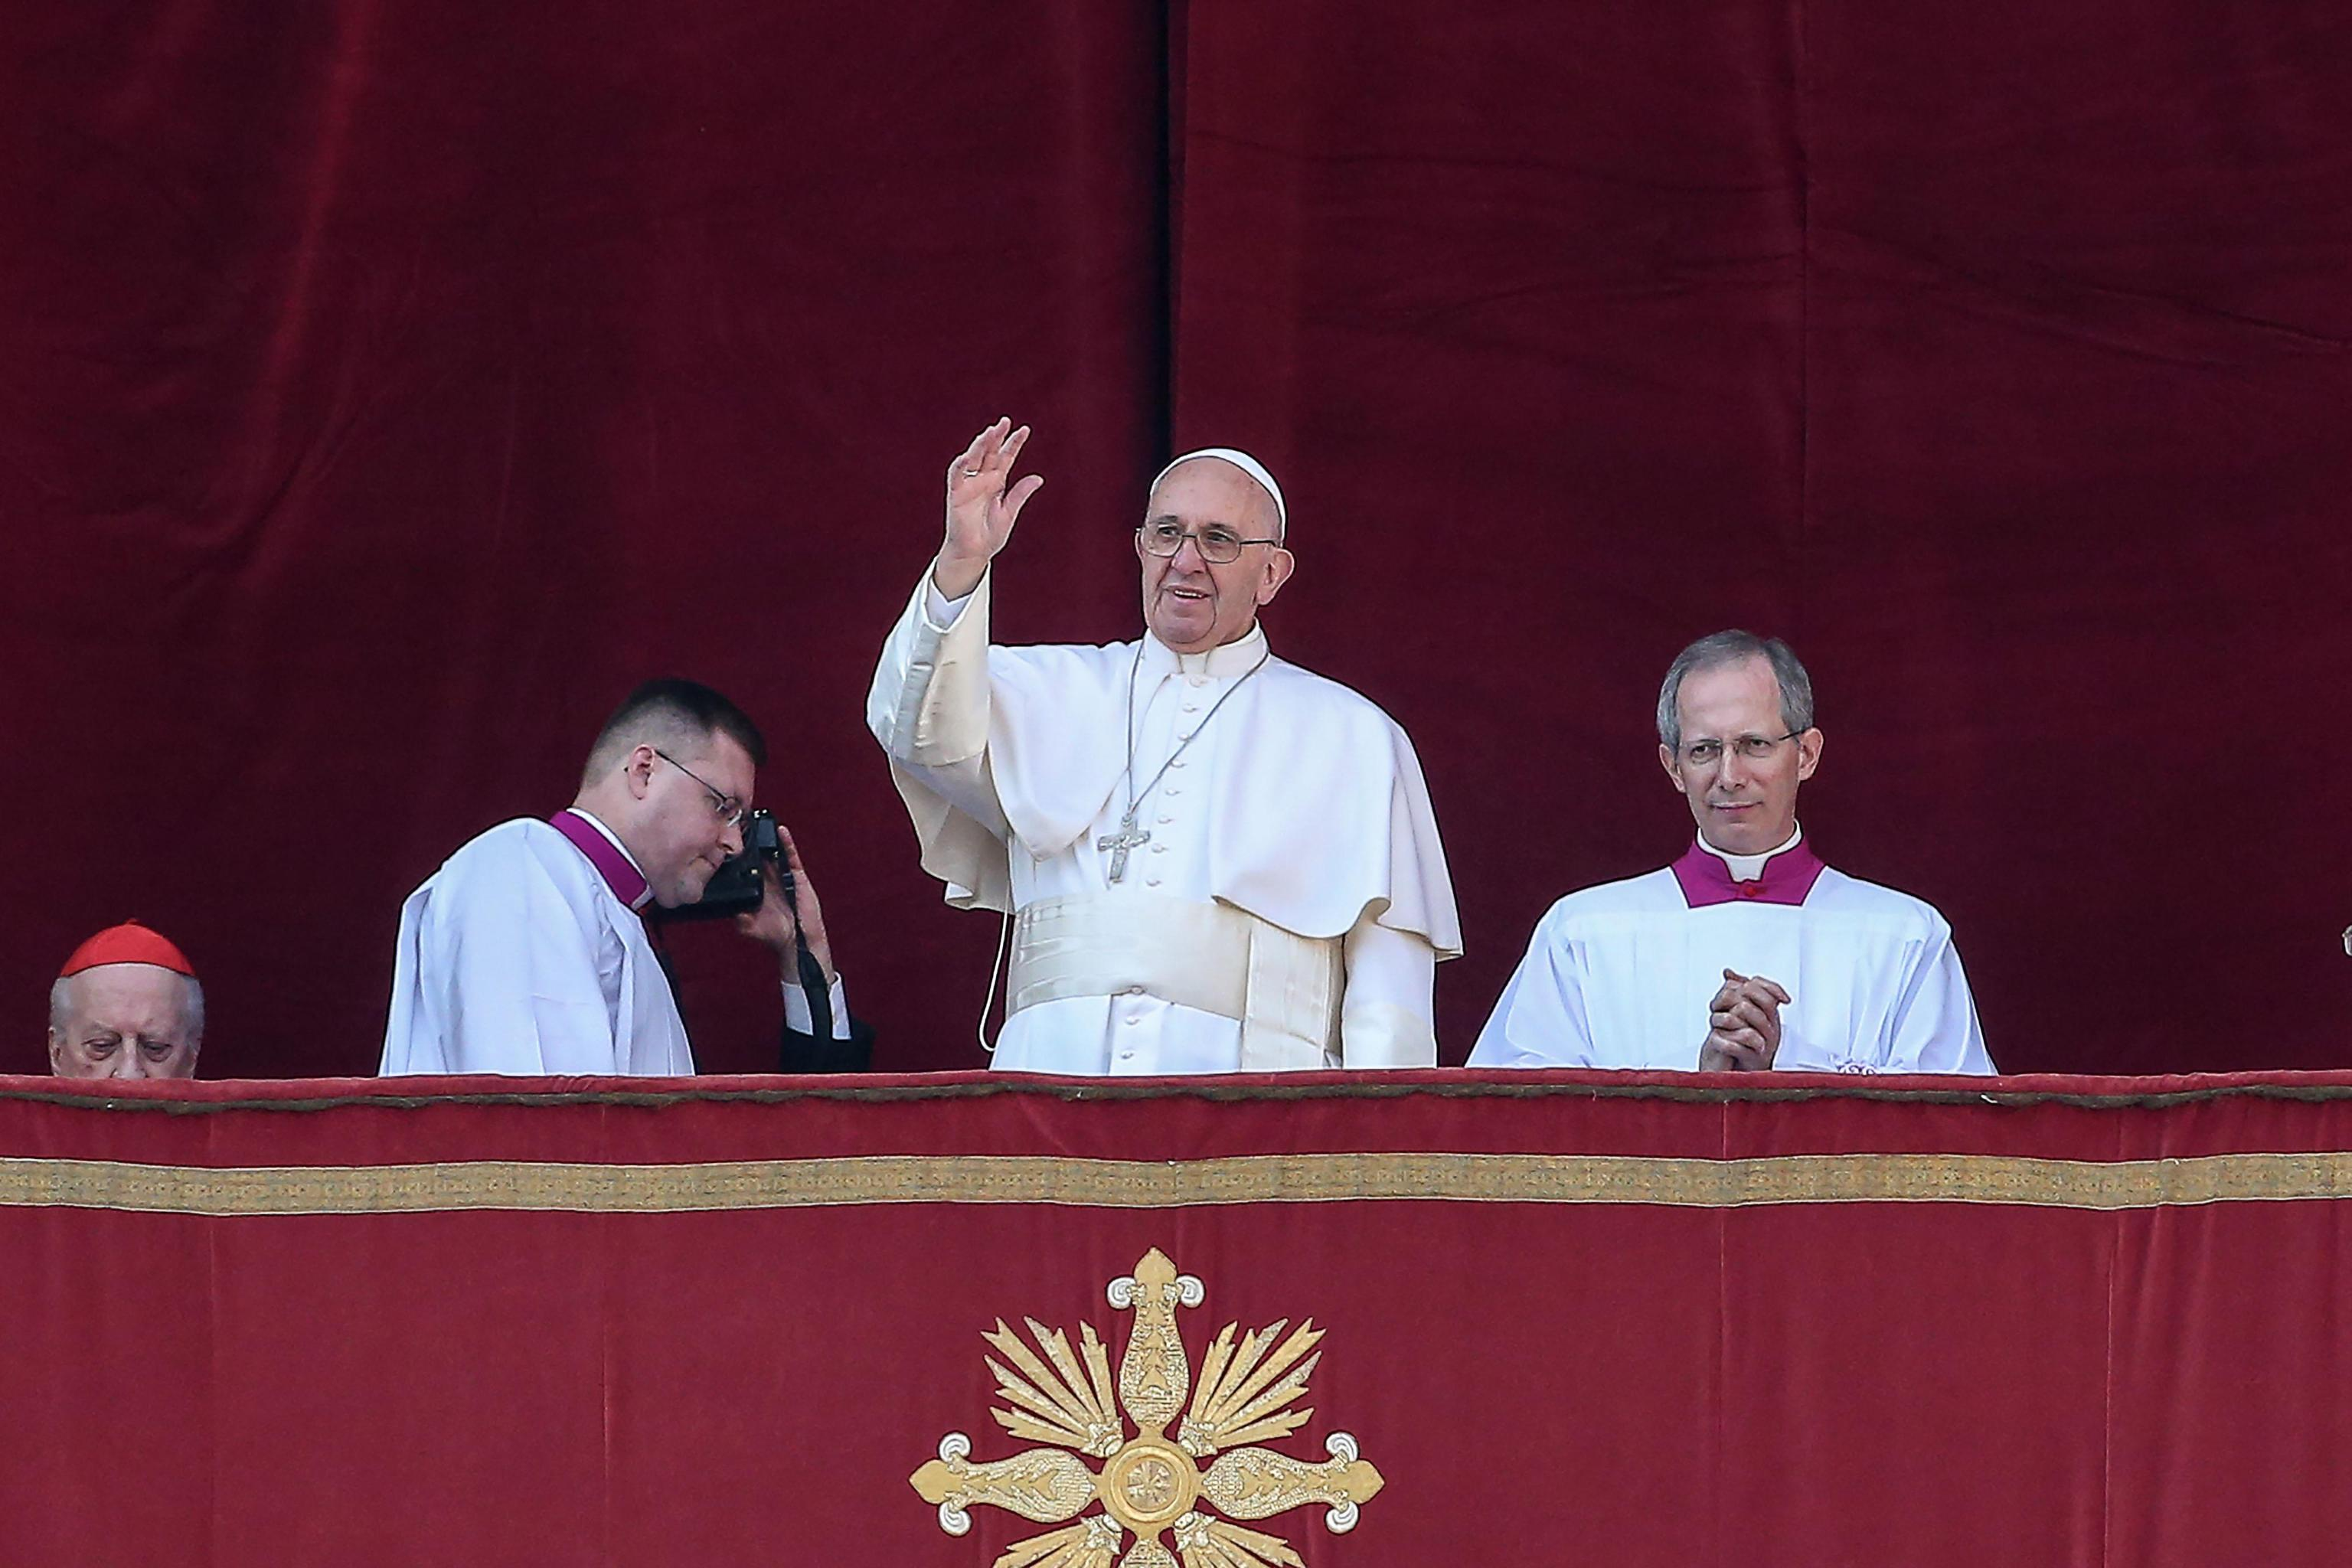 Pope Francis waves to the faithful as he delivers the traditional Urbi et Orbi Christmas Day message from the central balcony of St. Peters Basilica in Vatican City